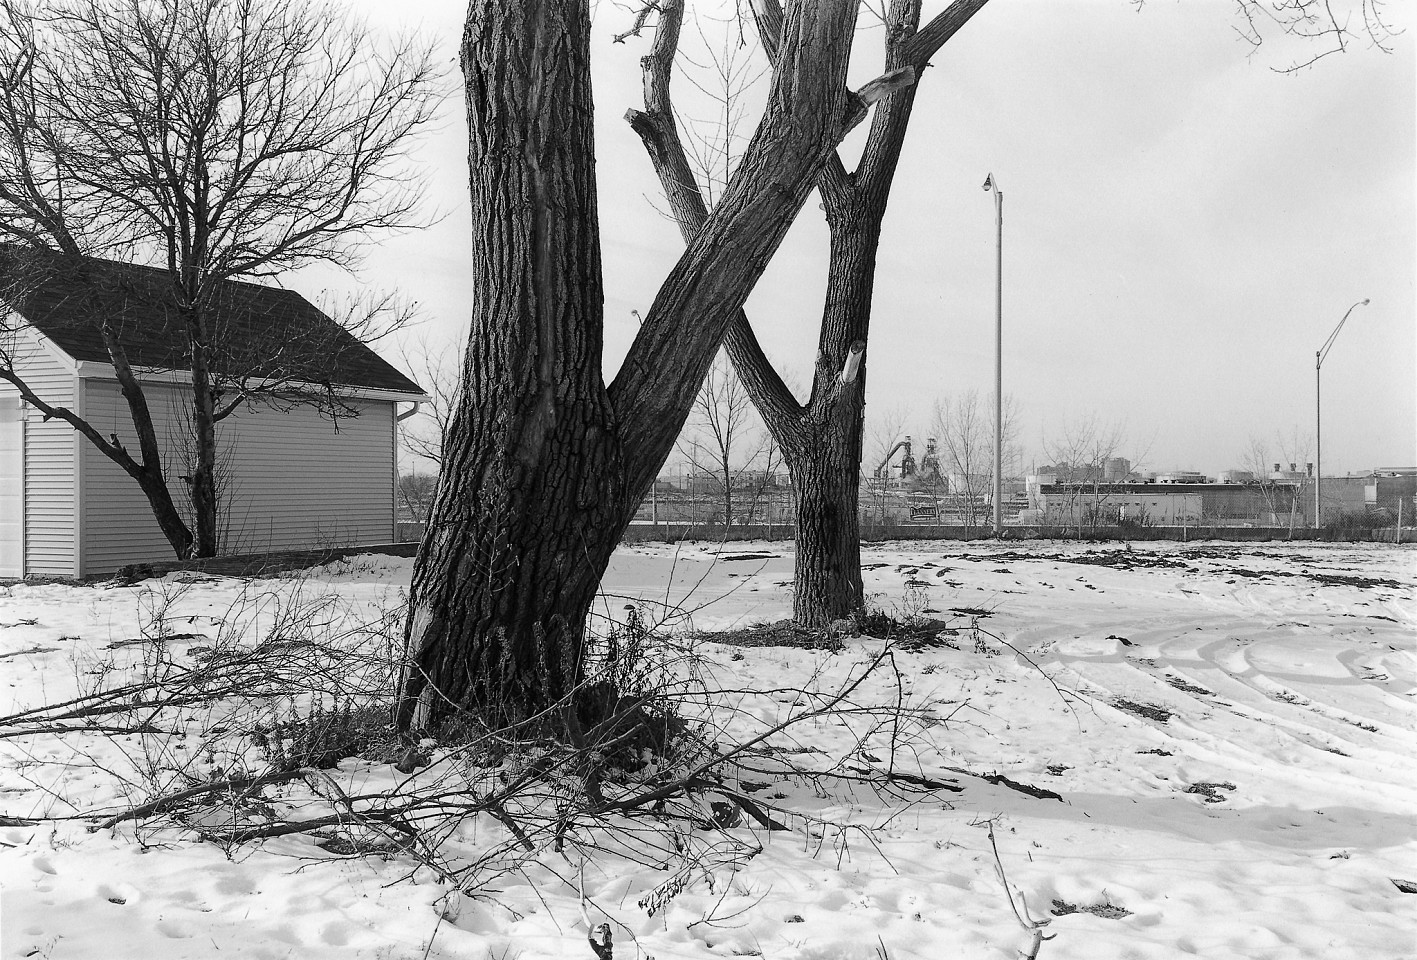 Andrew Borowiec ,   Barkwill Avenue, Slavic Village, Cleveland  ,  2002     Gelatin silver print ,  16 x 20 in.     Verso: signed, titled, dated & numbered in edition of 10 © Andrew Borowiec     $2,500